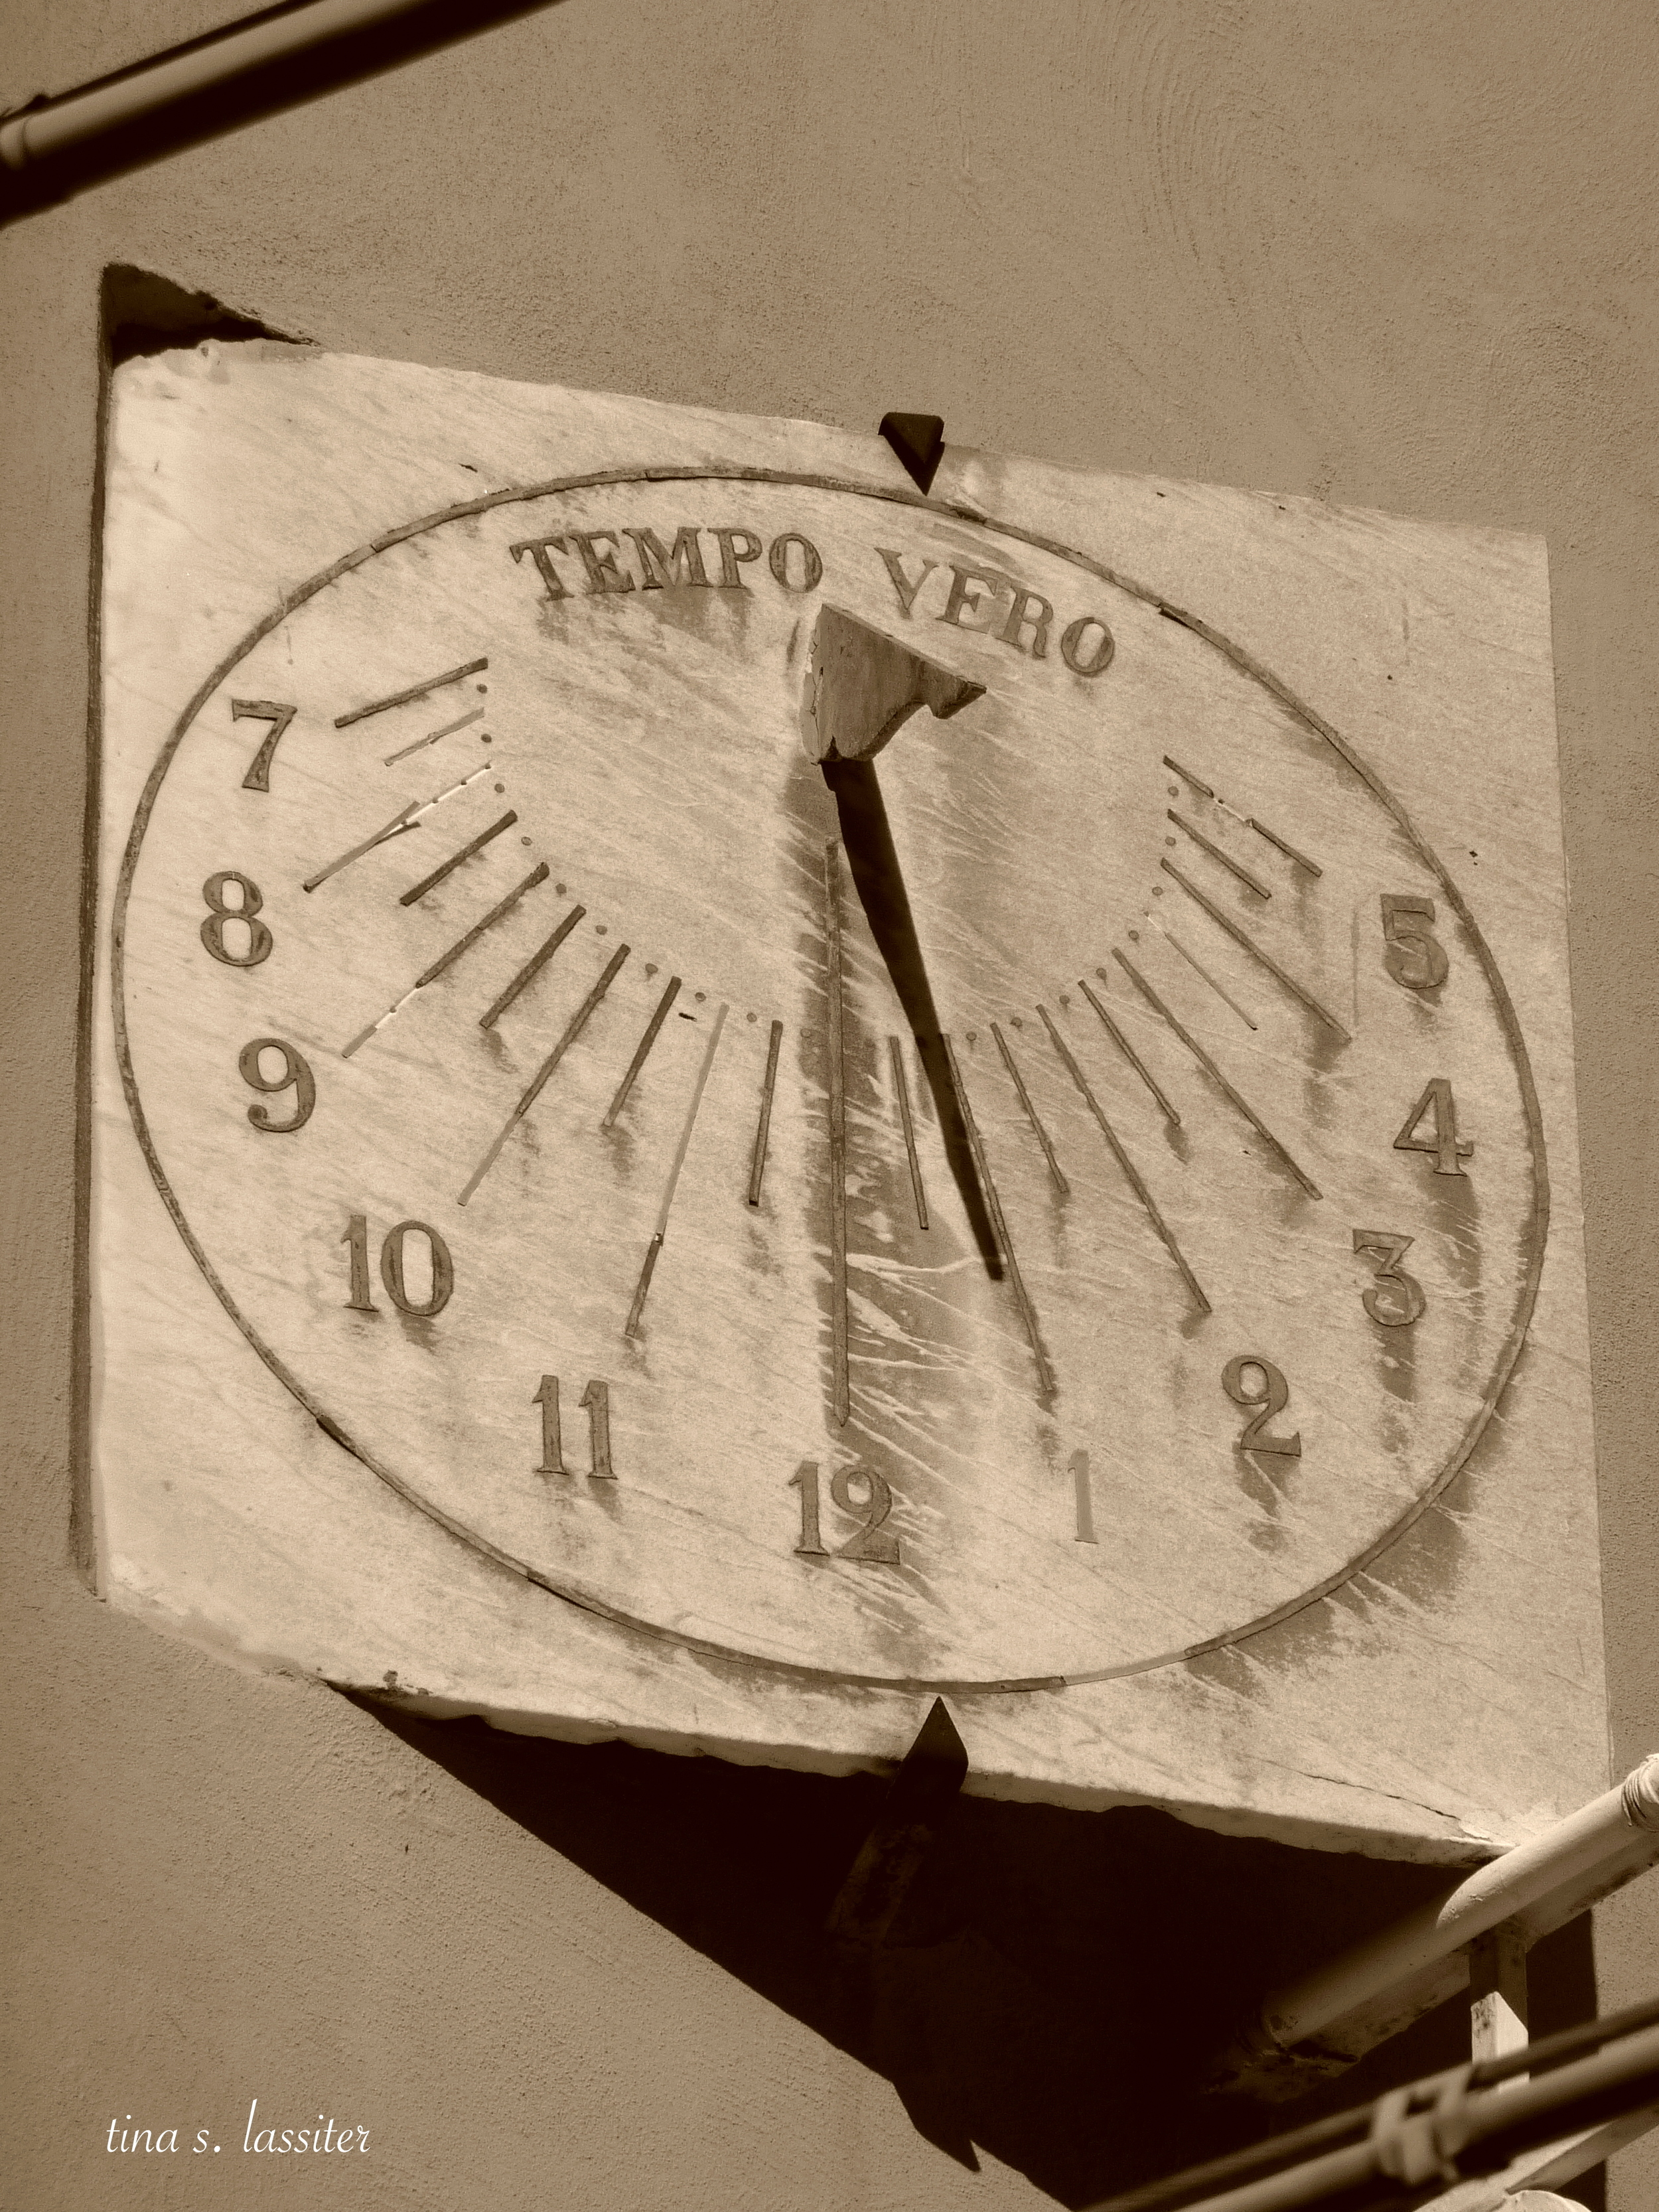 sundial in sorrento